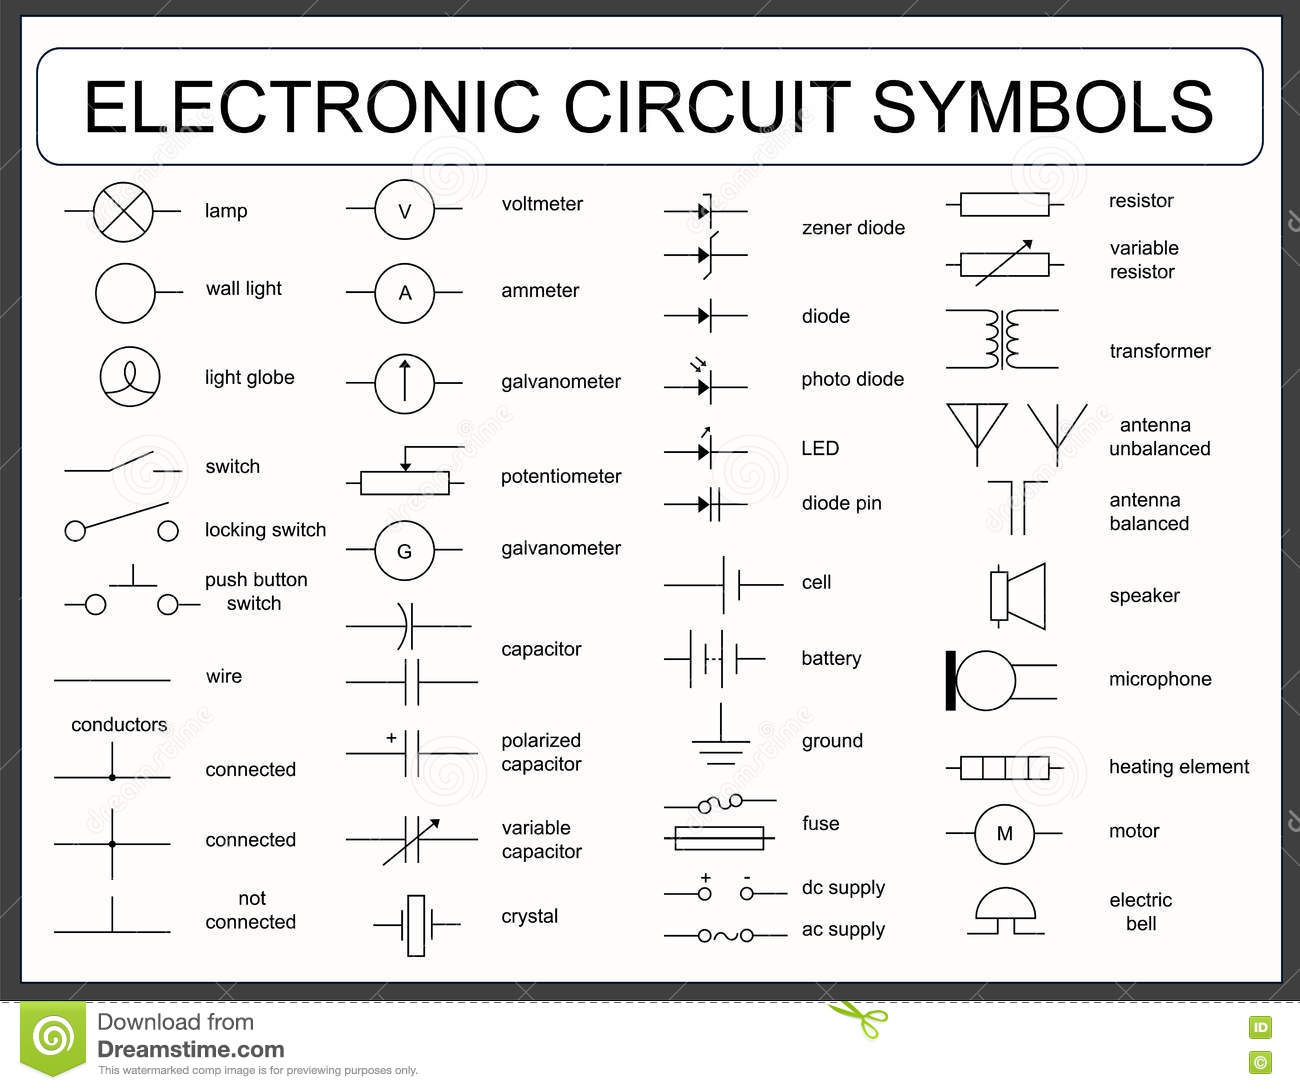 Ac Wiring Symbols | Wiring Diagram Automotive on 3 way switch with dimmer, 3 way switch logic, 3 way switch connection, 3 way switch installation, 3 way switch output, 3 way switch configuration, 3 way switch symbol, 3 way switch illustration, 3 way switch parts, 3 way switch drawing, 3 way switch layout, 3 way switch wire, 3 way switch scheme, 3 way switch operation, 3 way switch troubleshooting, 3 way switch multiple lights, 3 way switch wiring, 3 way switch power, 3 way switch diagram, 3 way switch breadboard,